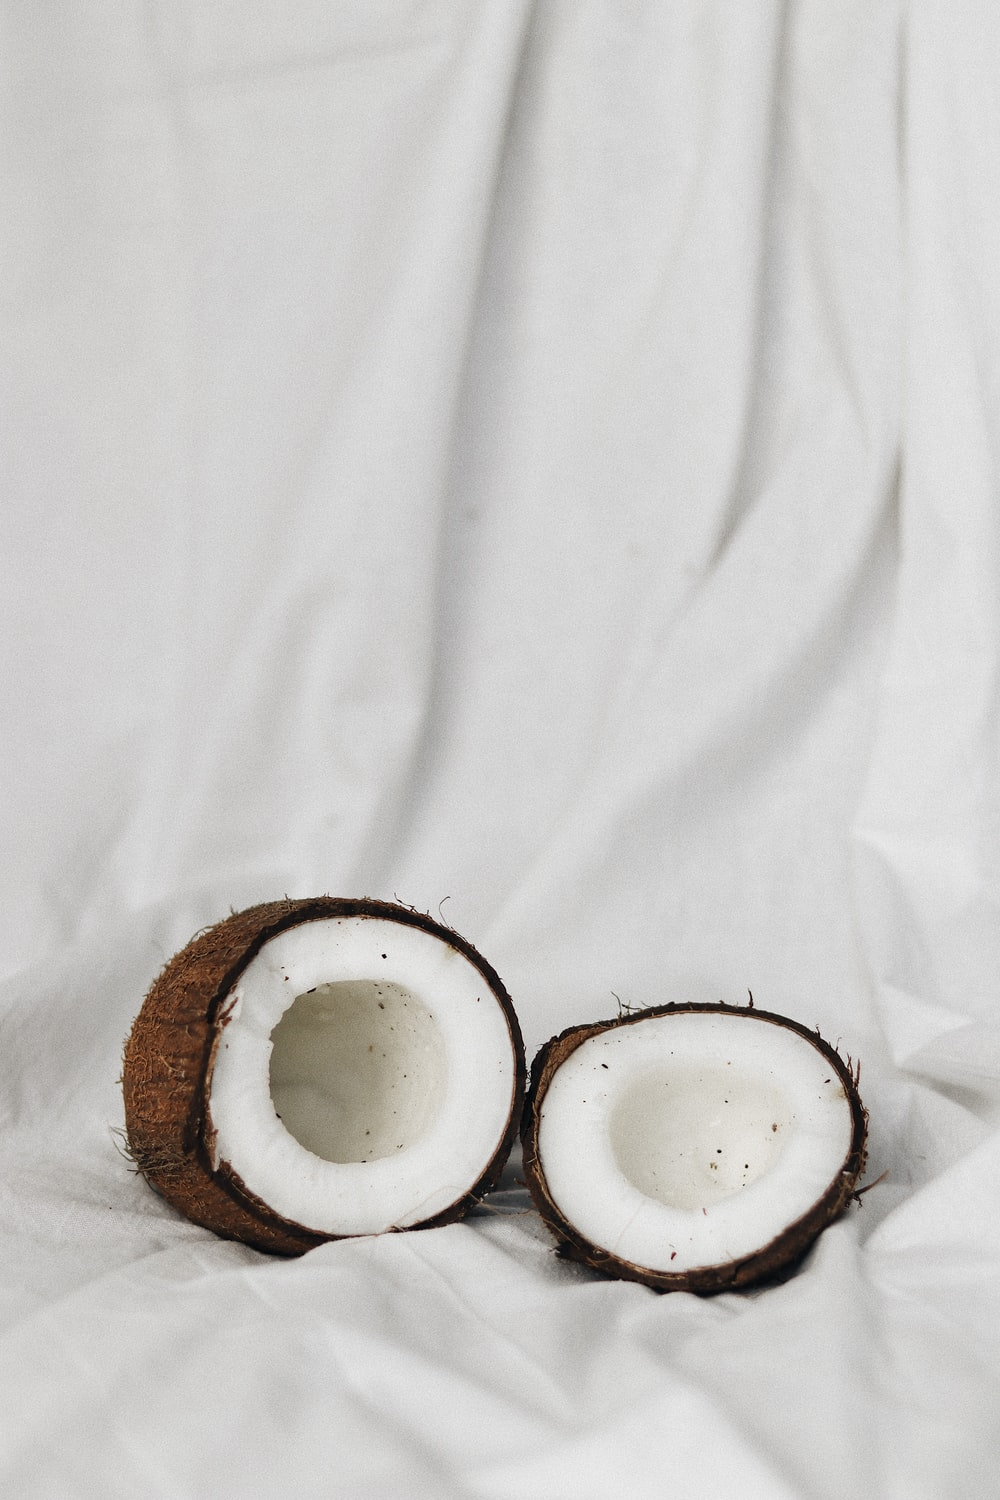 2 white ceramic bowls on brown wooden tray